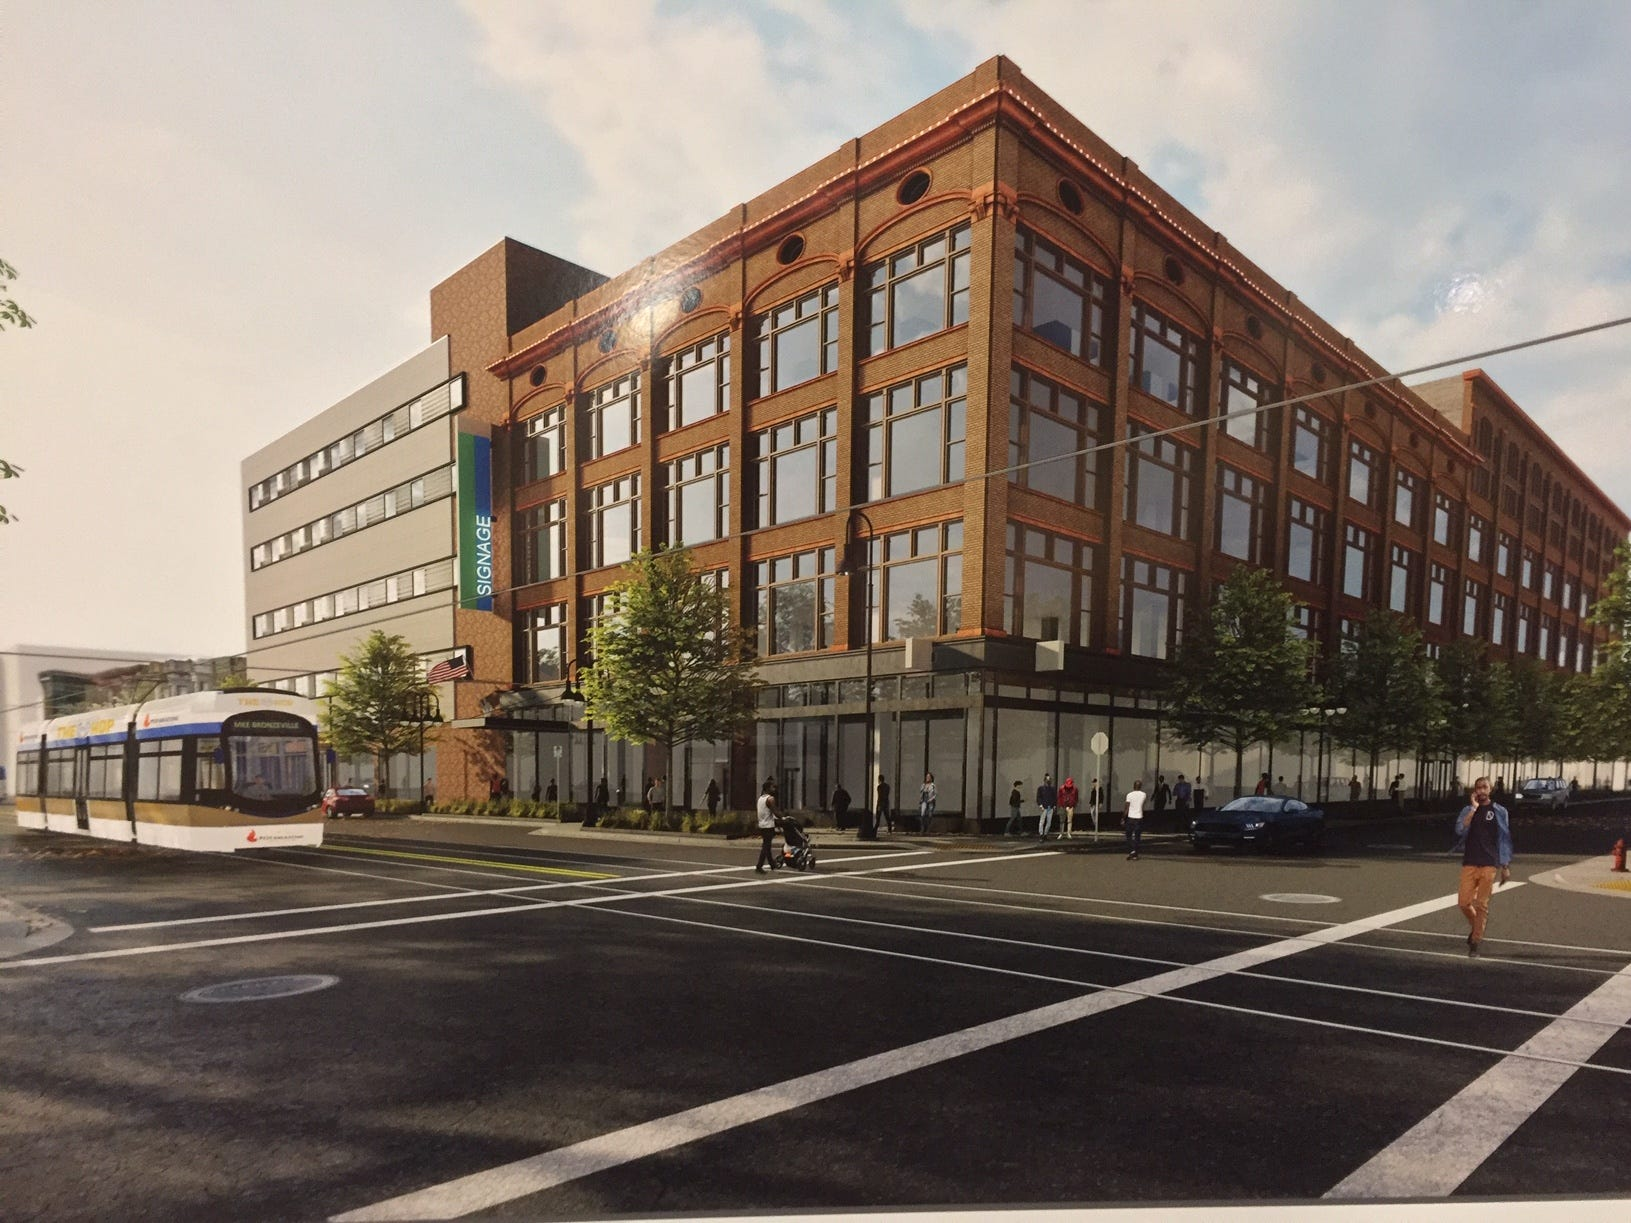 Medical College's new program for Milwaukee central city health to redevelop former Schuster's on King Drive